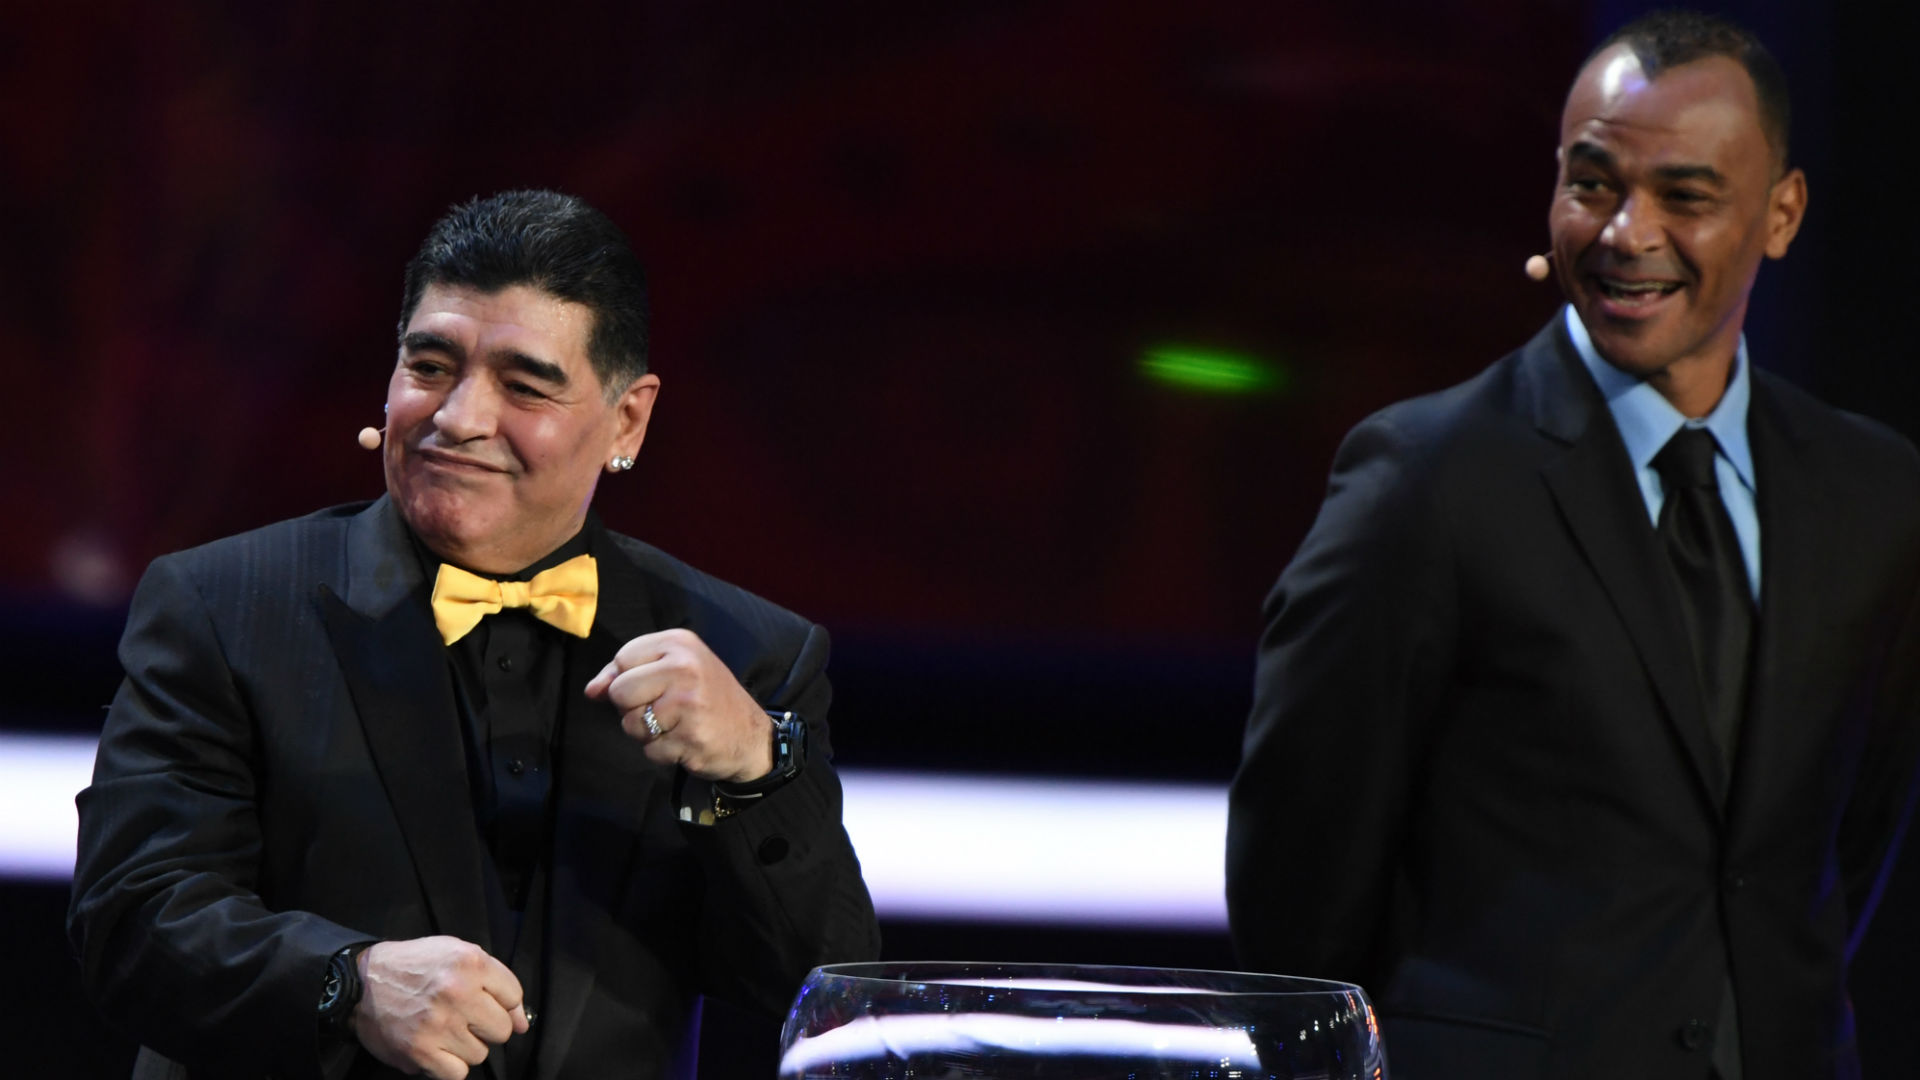 Cafu on Maradona: To watch him play was unbelievable, the best thing in the world